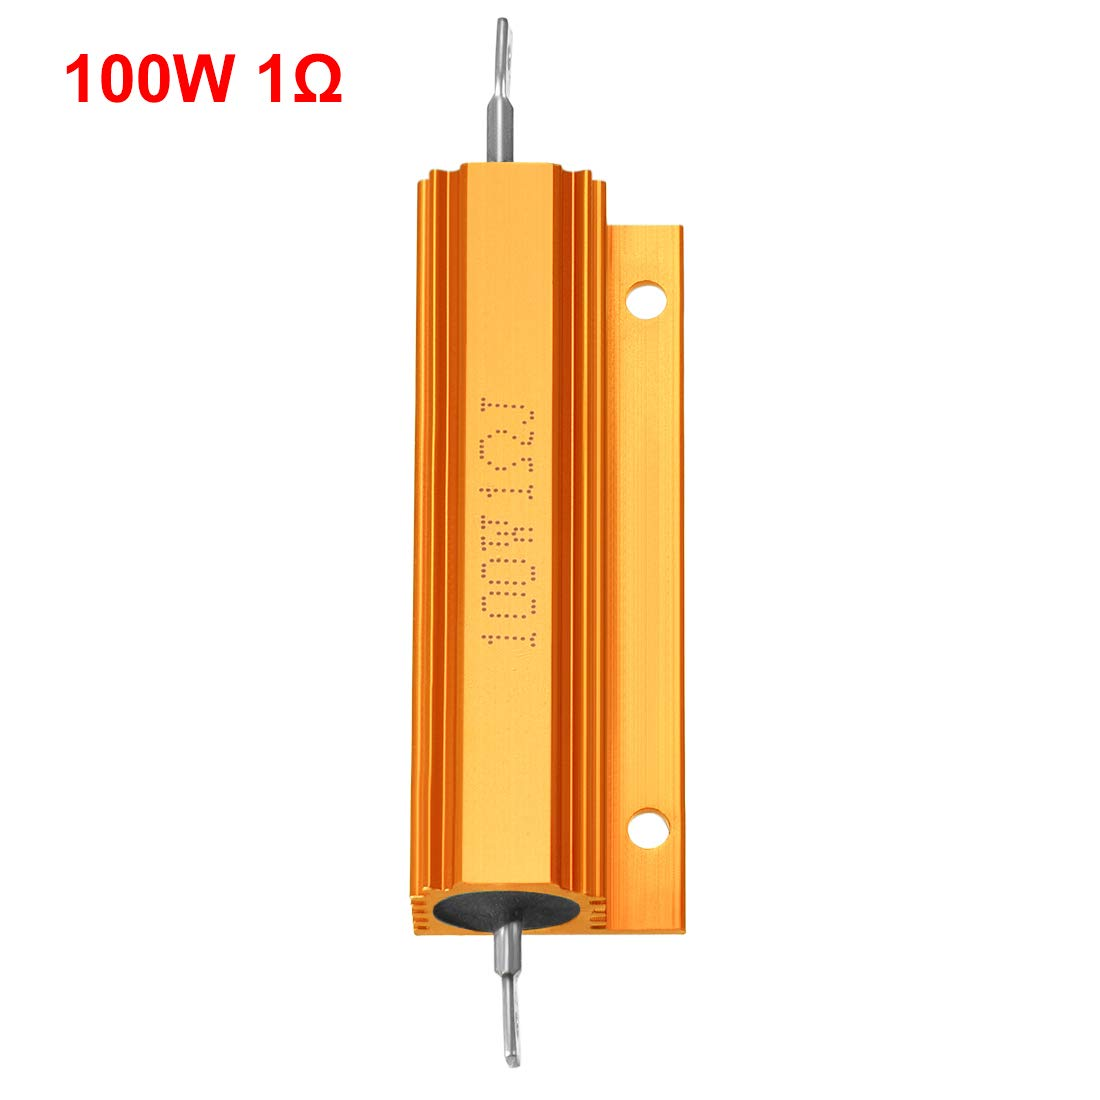 uxcell Aluminum Case Resistor 100W 15 Ohm Wirewound Yellow for LED Replacement Converter 100W 15RJ